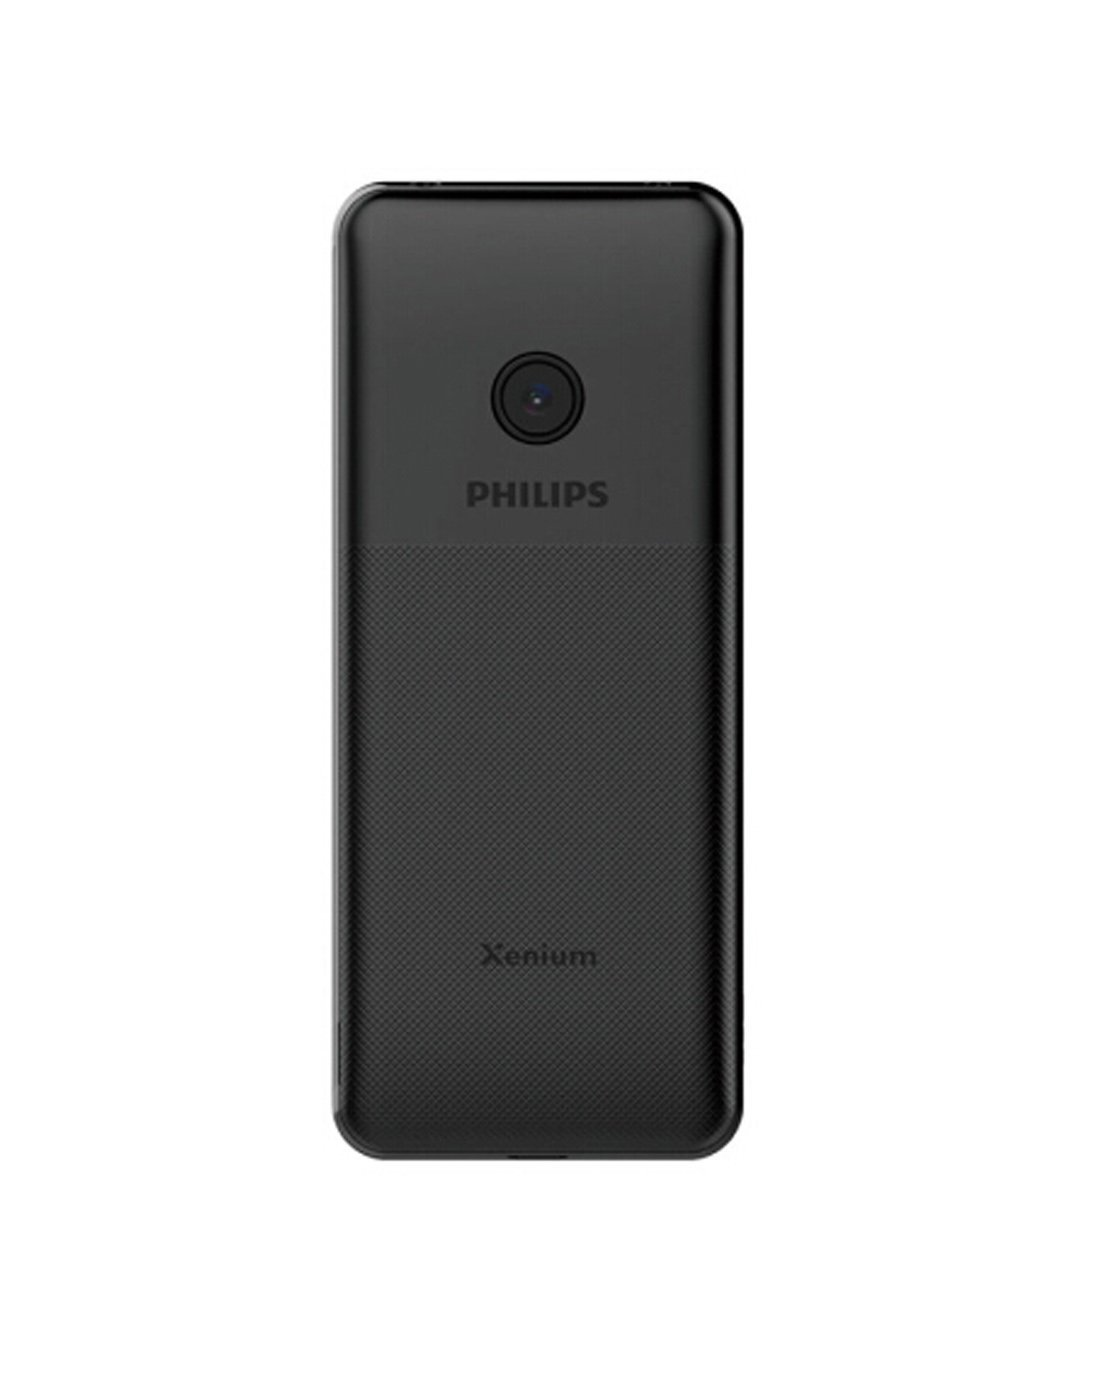 Mobile Communications Philips E168 black mobile Unicom 2G old phone dual card dual standby